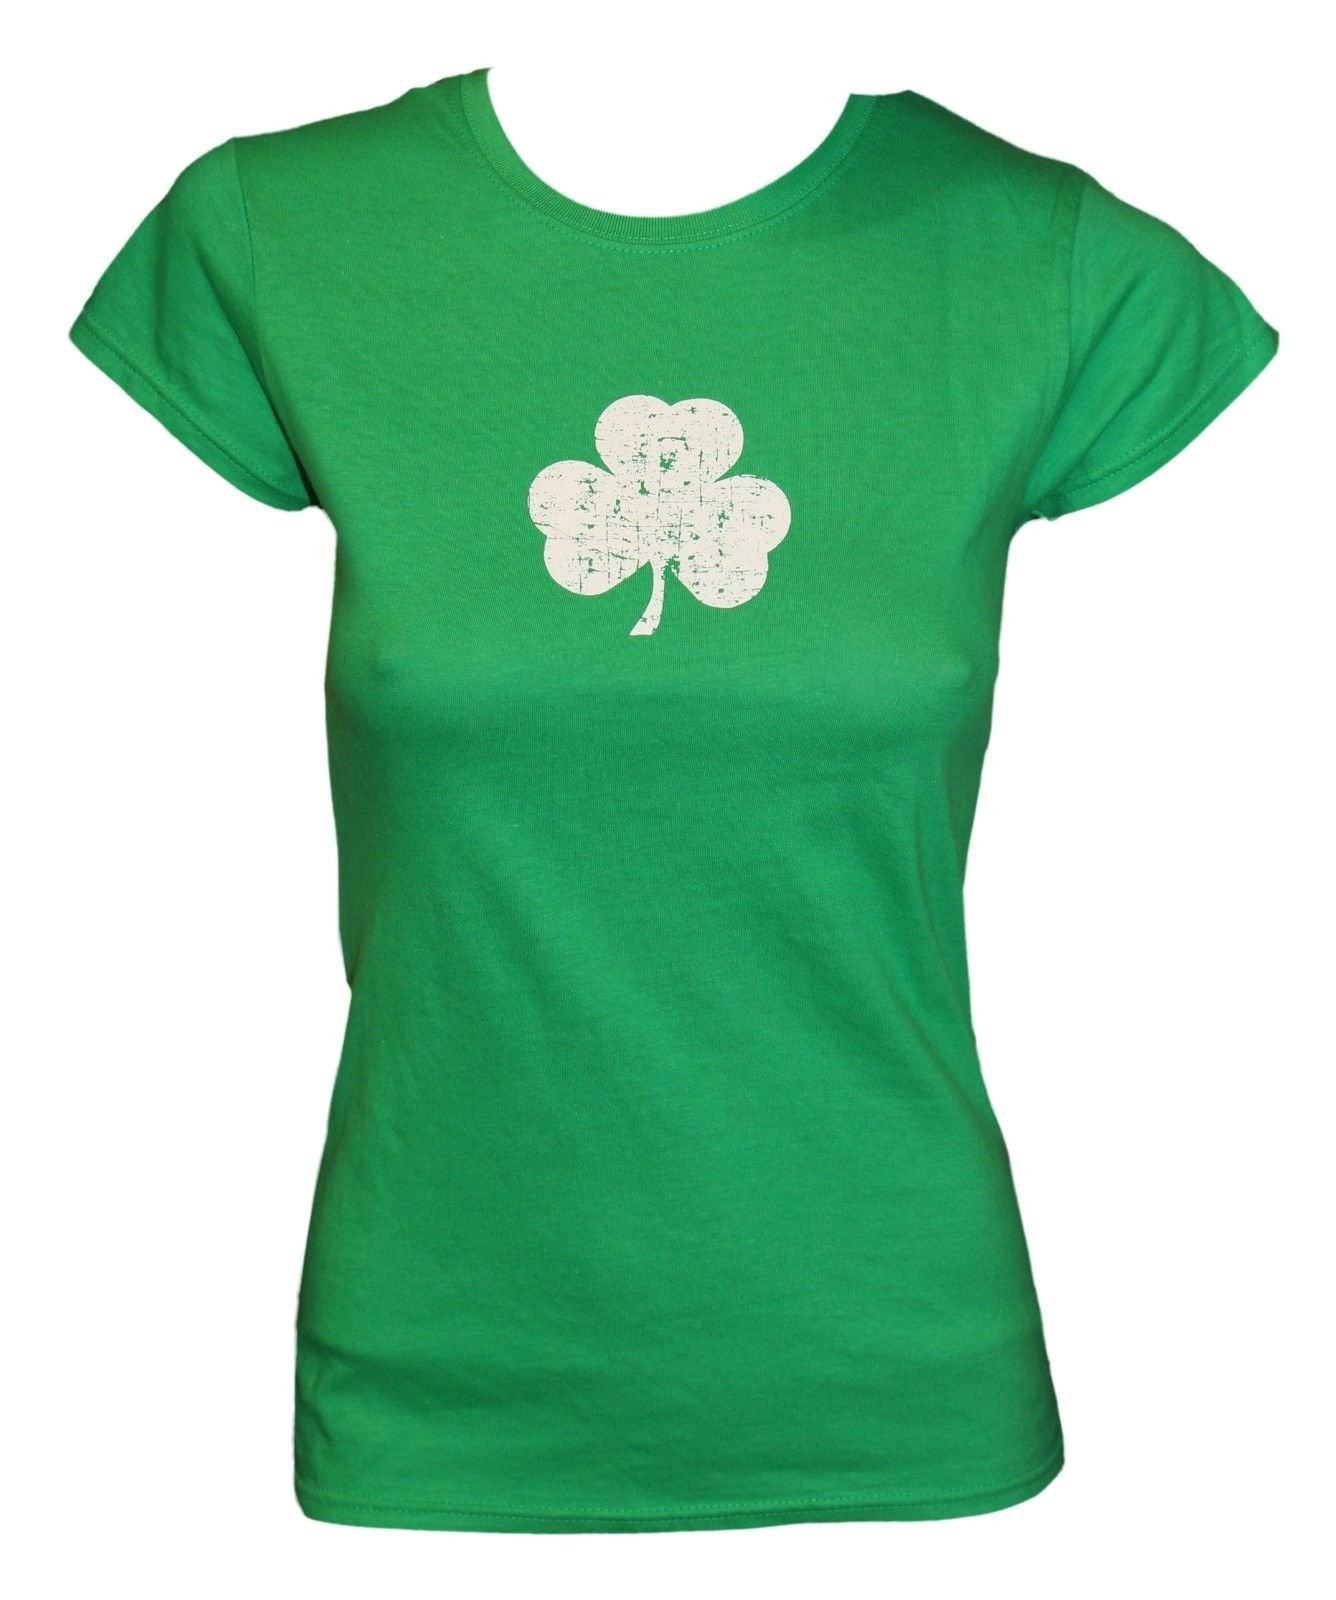 Screen Printed Distressed Shamrock Baby T-Shirt 6m 12m 18m 24m Irish Green Tee